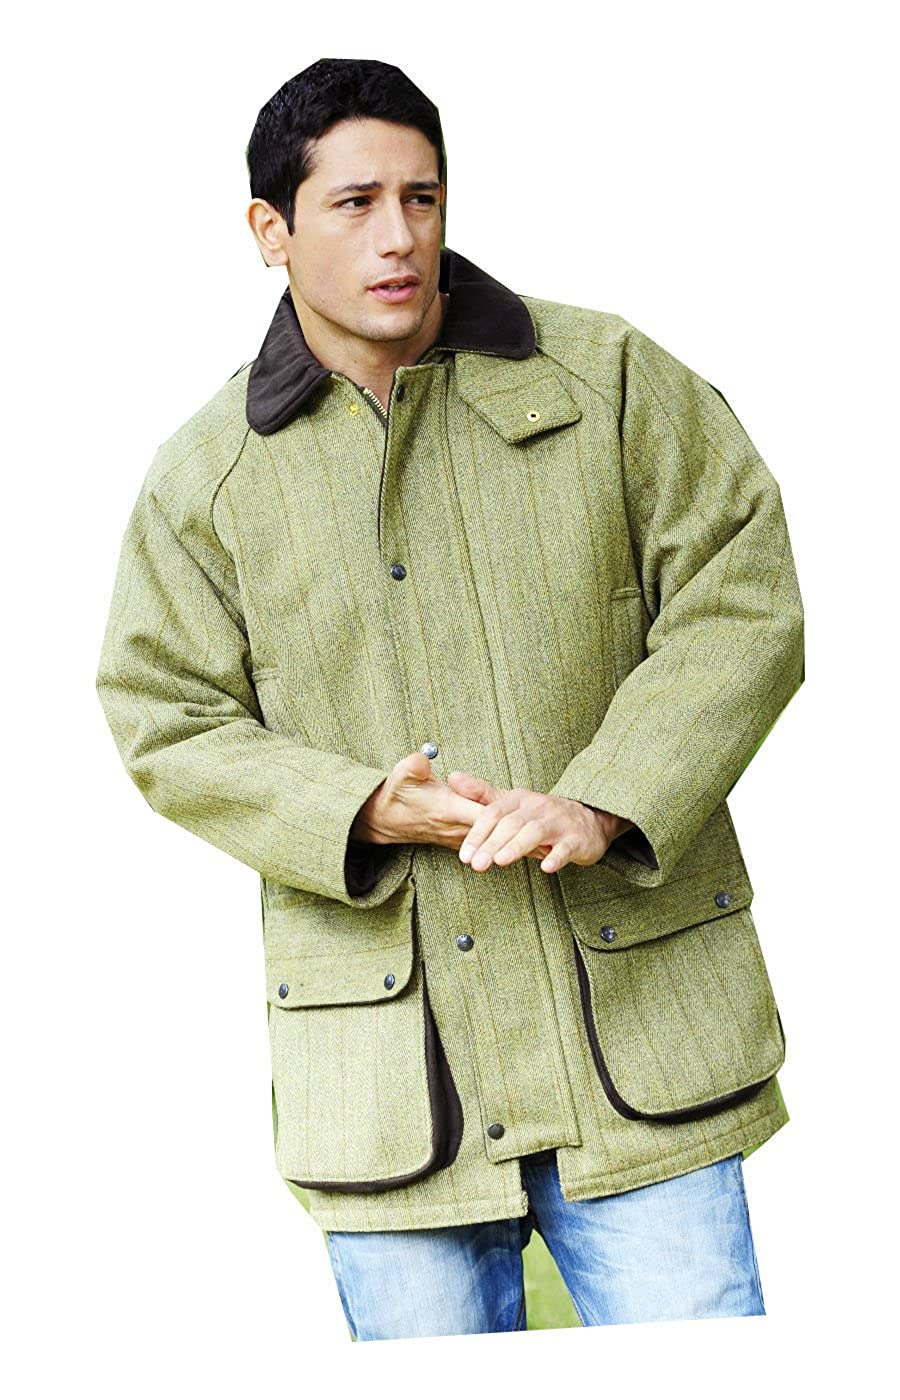 6254ac2a280ba Bronte Derby Shooting Tweed Field Coat/Jacket Classic Country Wear Clothing:  Amazon.co.uk: Clothing